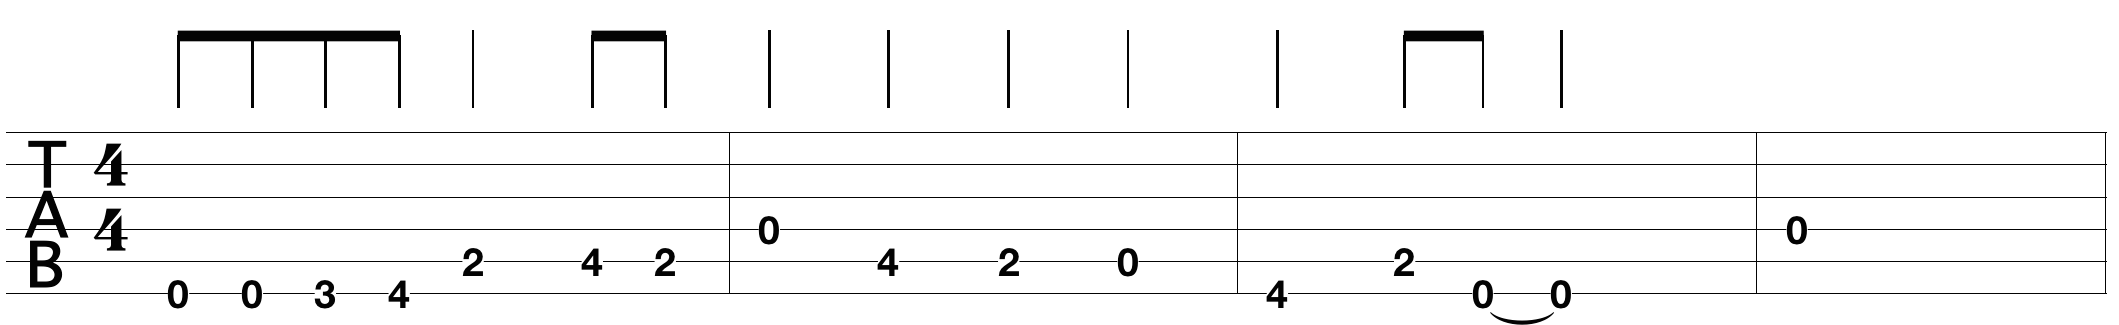 guitar-blues-tab_1.png